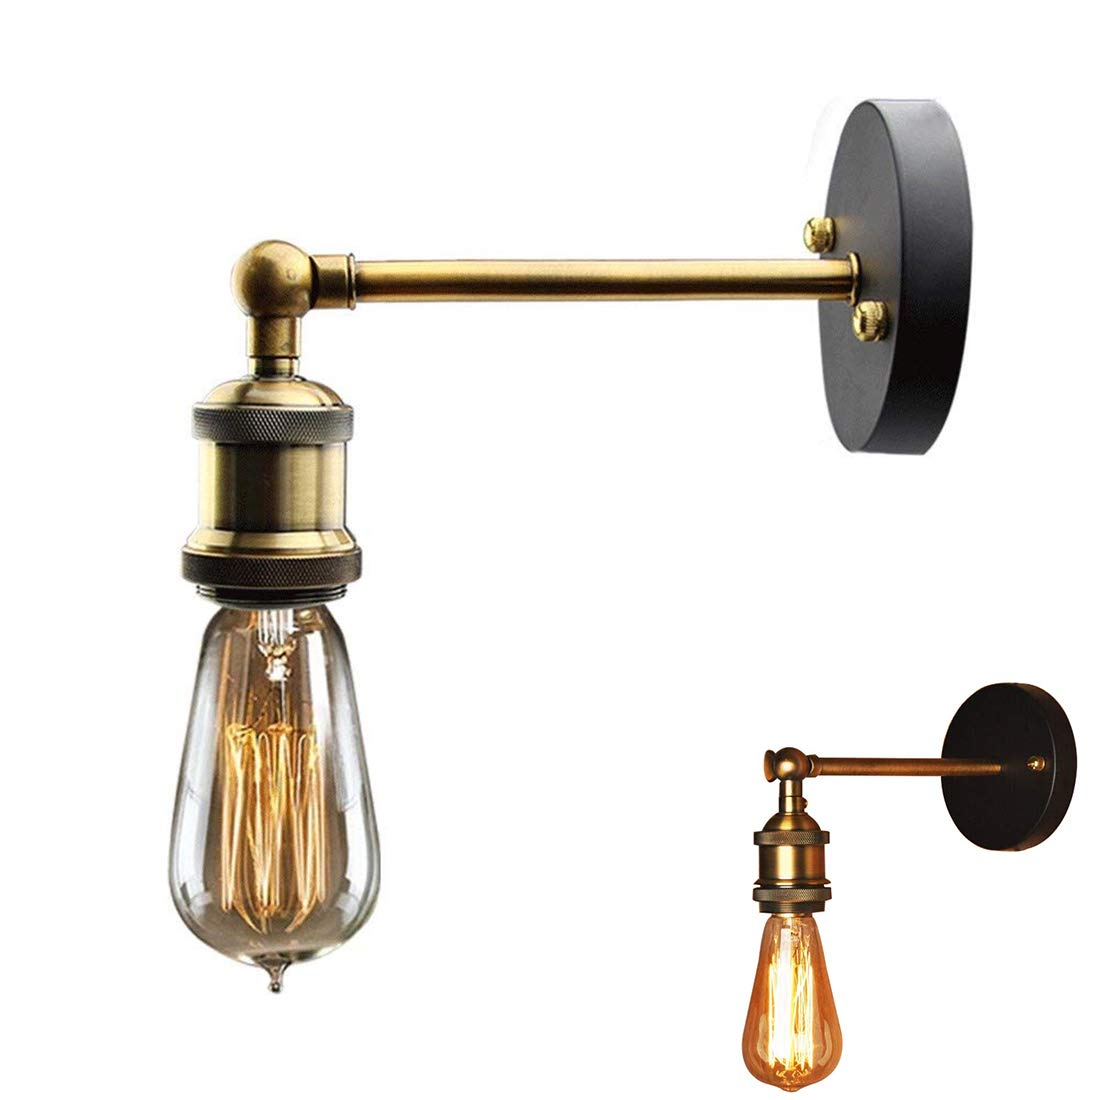 ✨Vintage Industrial luz antigua pared lámpara cabeza cobre montaje accesorios pared Retro lámpara de pared con la lámpara de Edison E27 Socket (Single ...